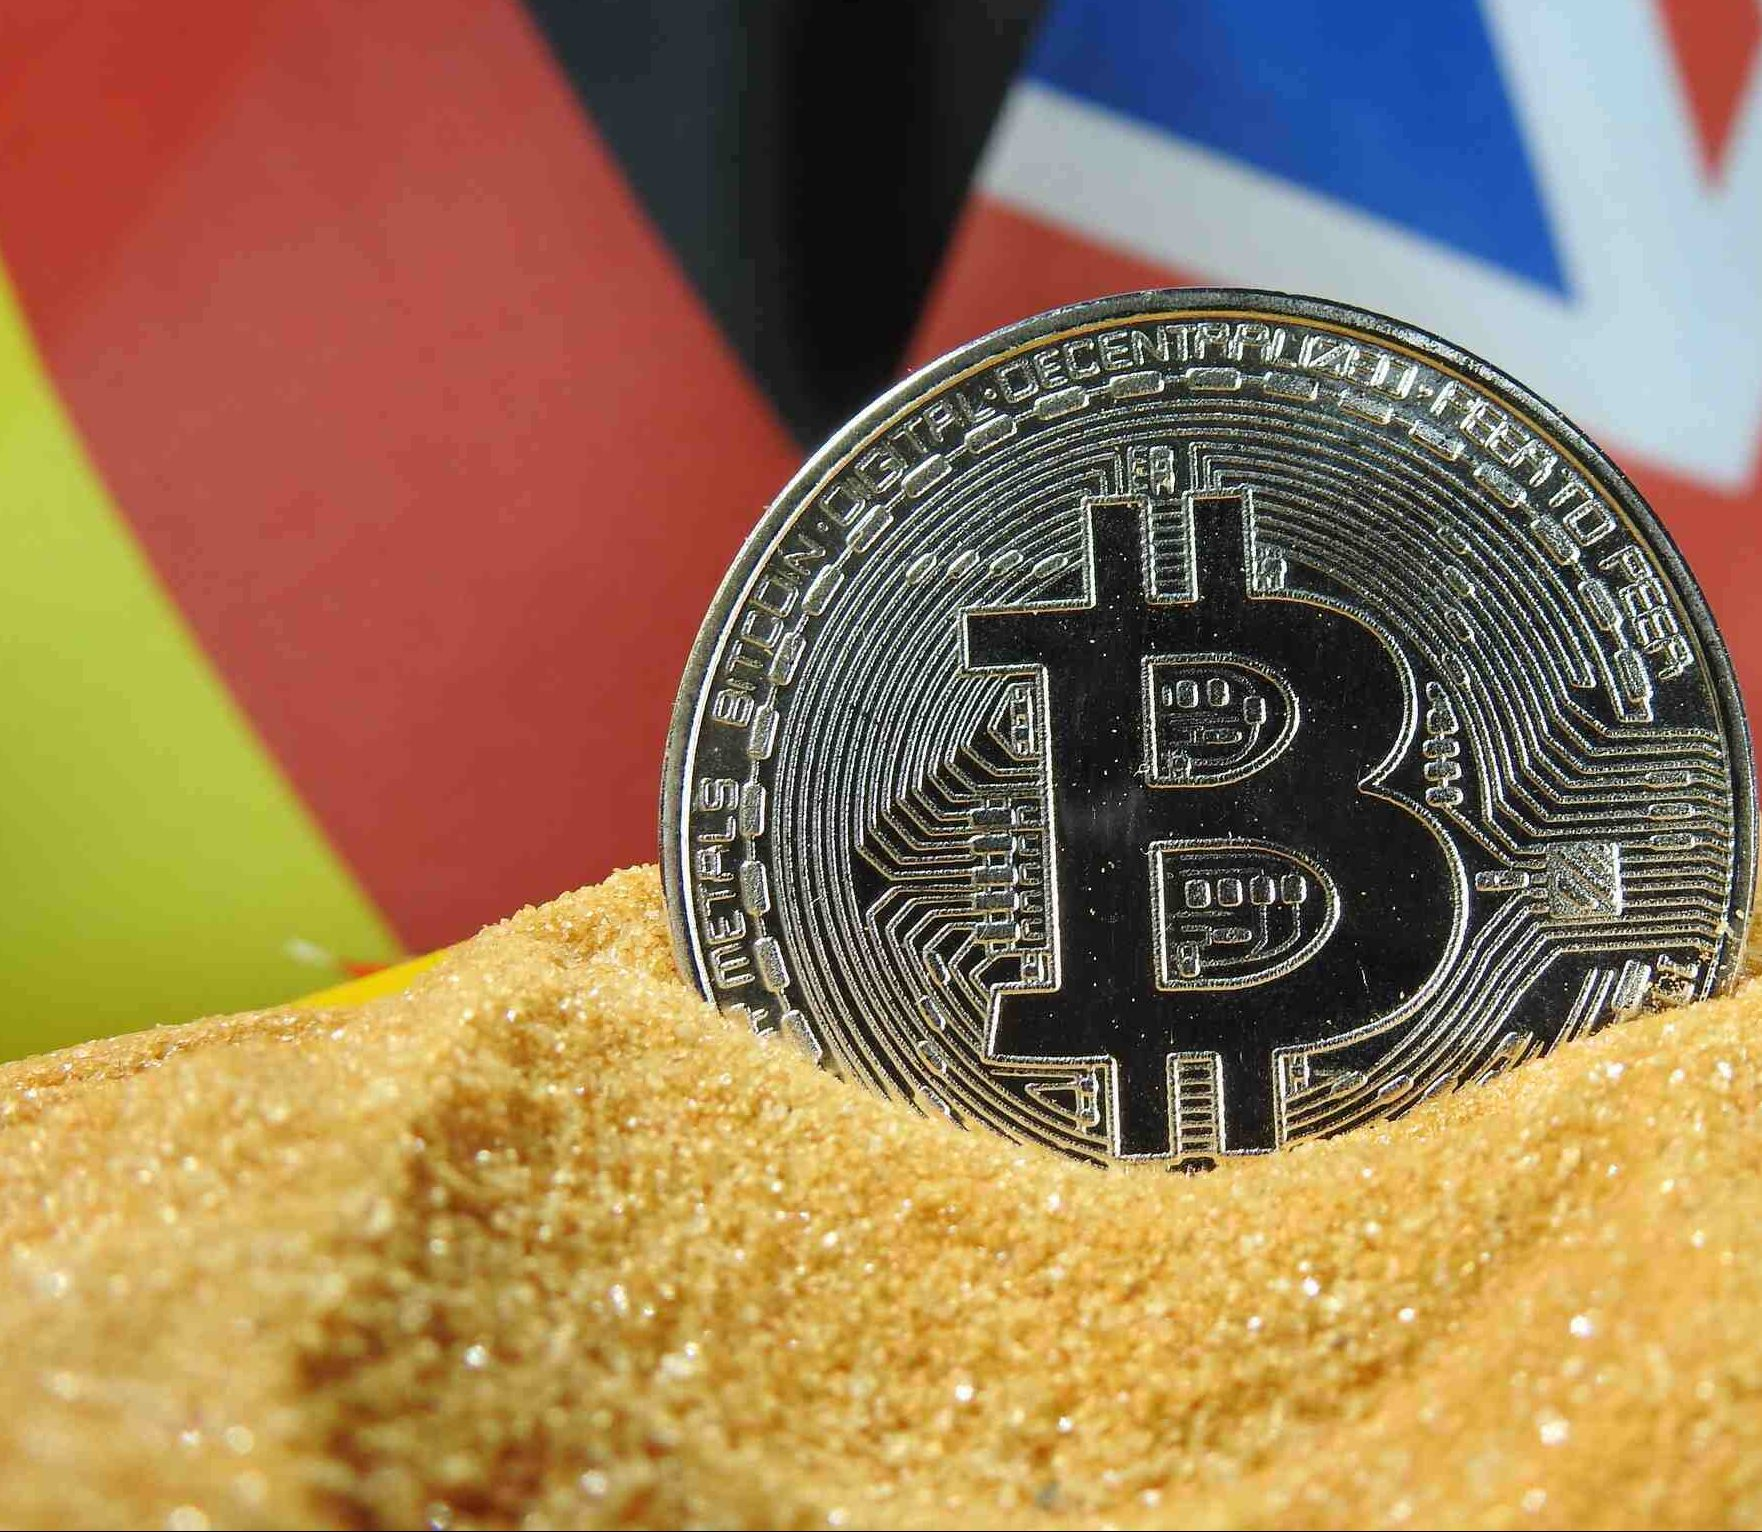 bitcoin with uk and german flgas behind it